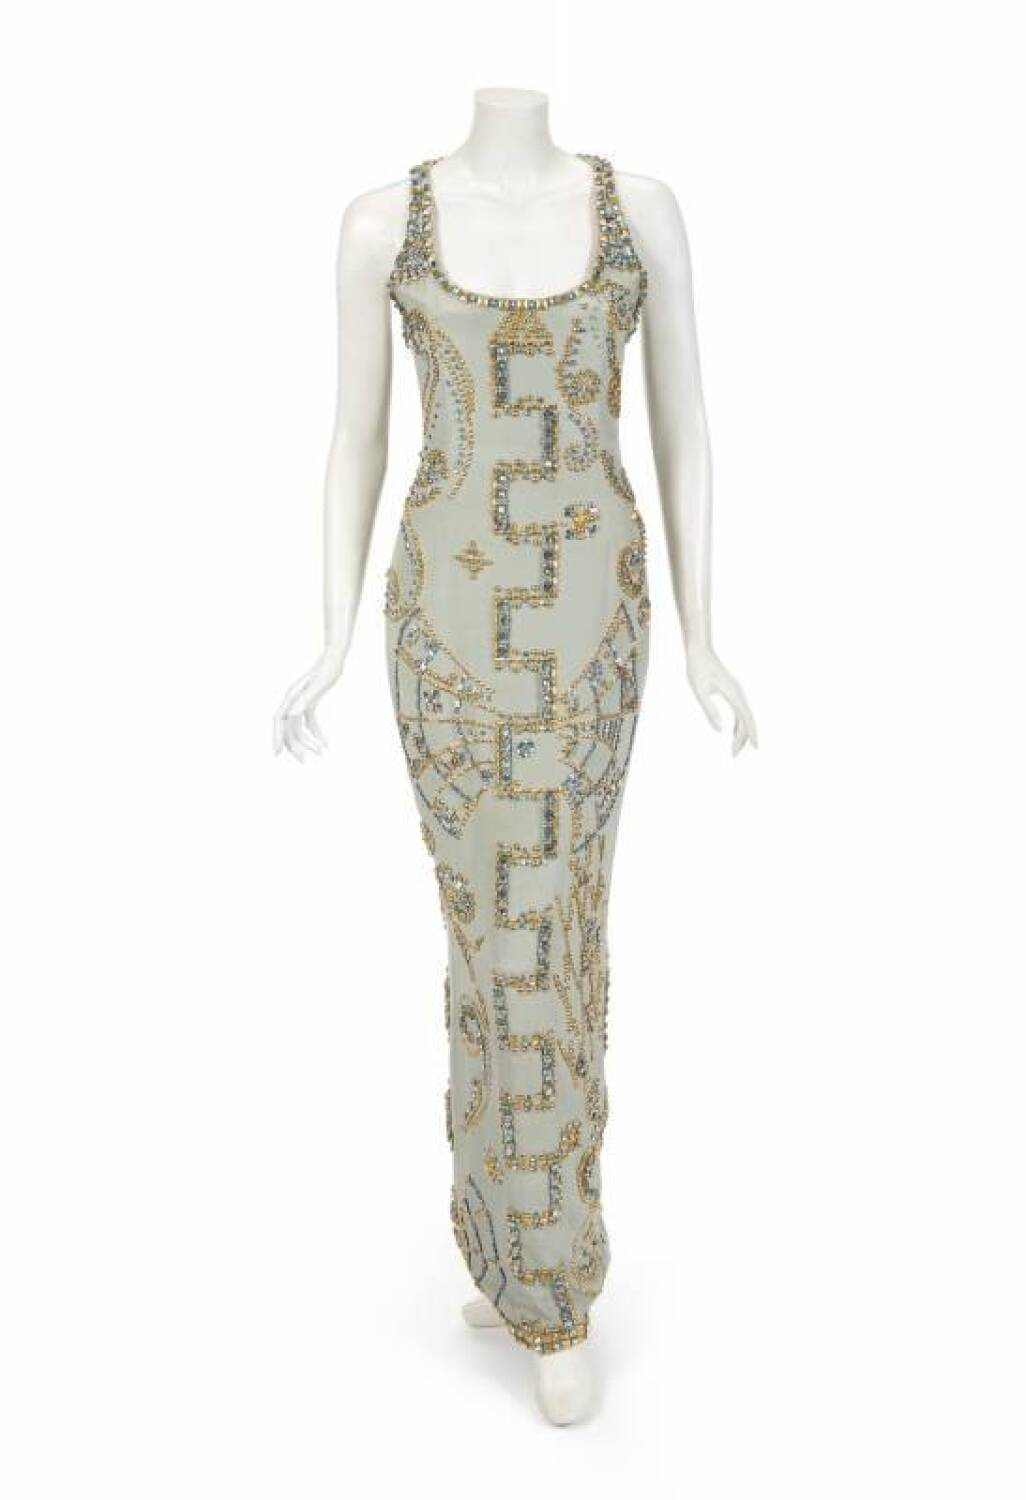 14136b9d8d3 HRH PRINCESS DIANA VERSACE PORTRAIT GOWN AND MAGAZINE Please Wait... Click  image to enlarge